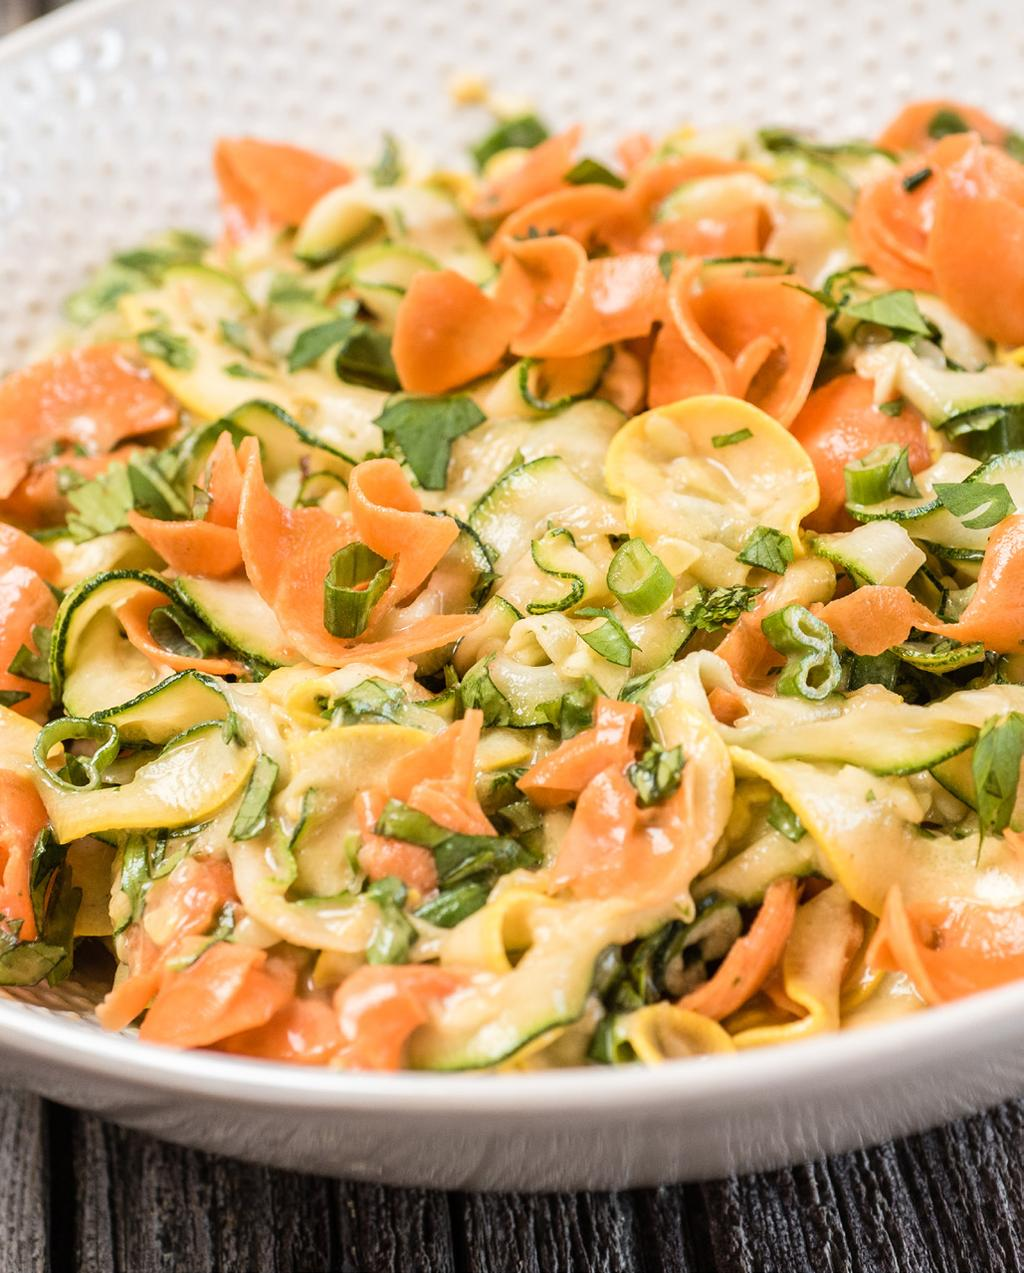 Veggie Ribbon Salad with Peanut Sauce Serves: 6 1/3 cup creamy peanut butter 2 tablespoons rice wine vinegar 1 tablespoon plus 1 teaspoon honey 1 tablespoon soy sauce 1 teaspoon lime juice 1 teaspoon